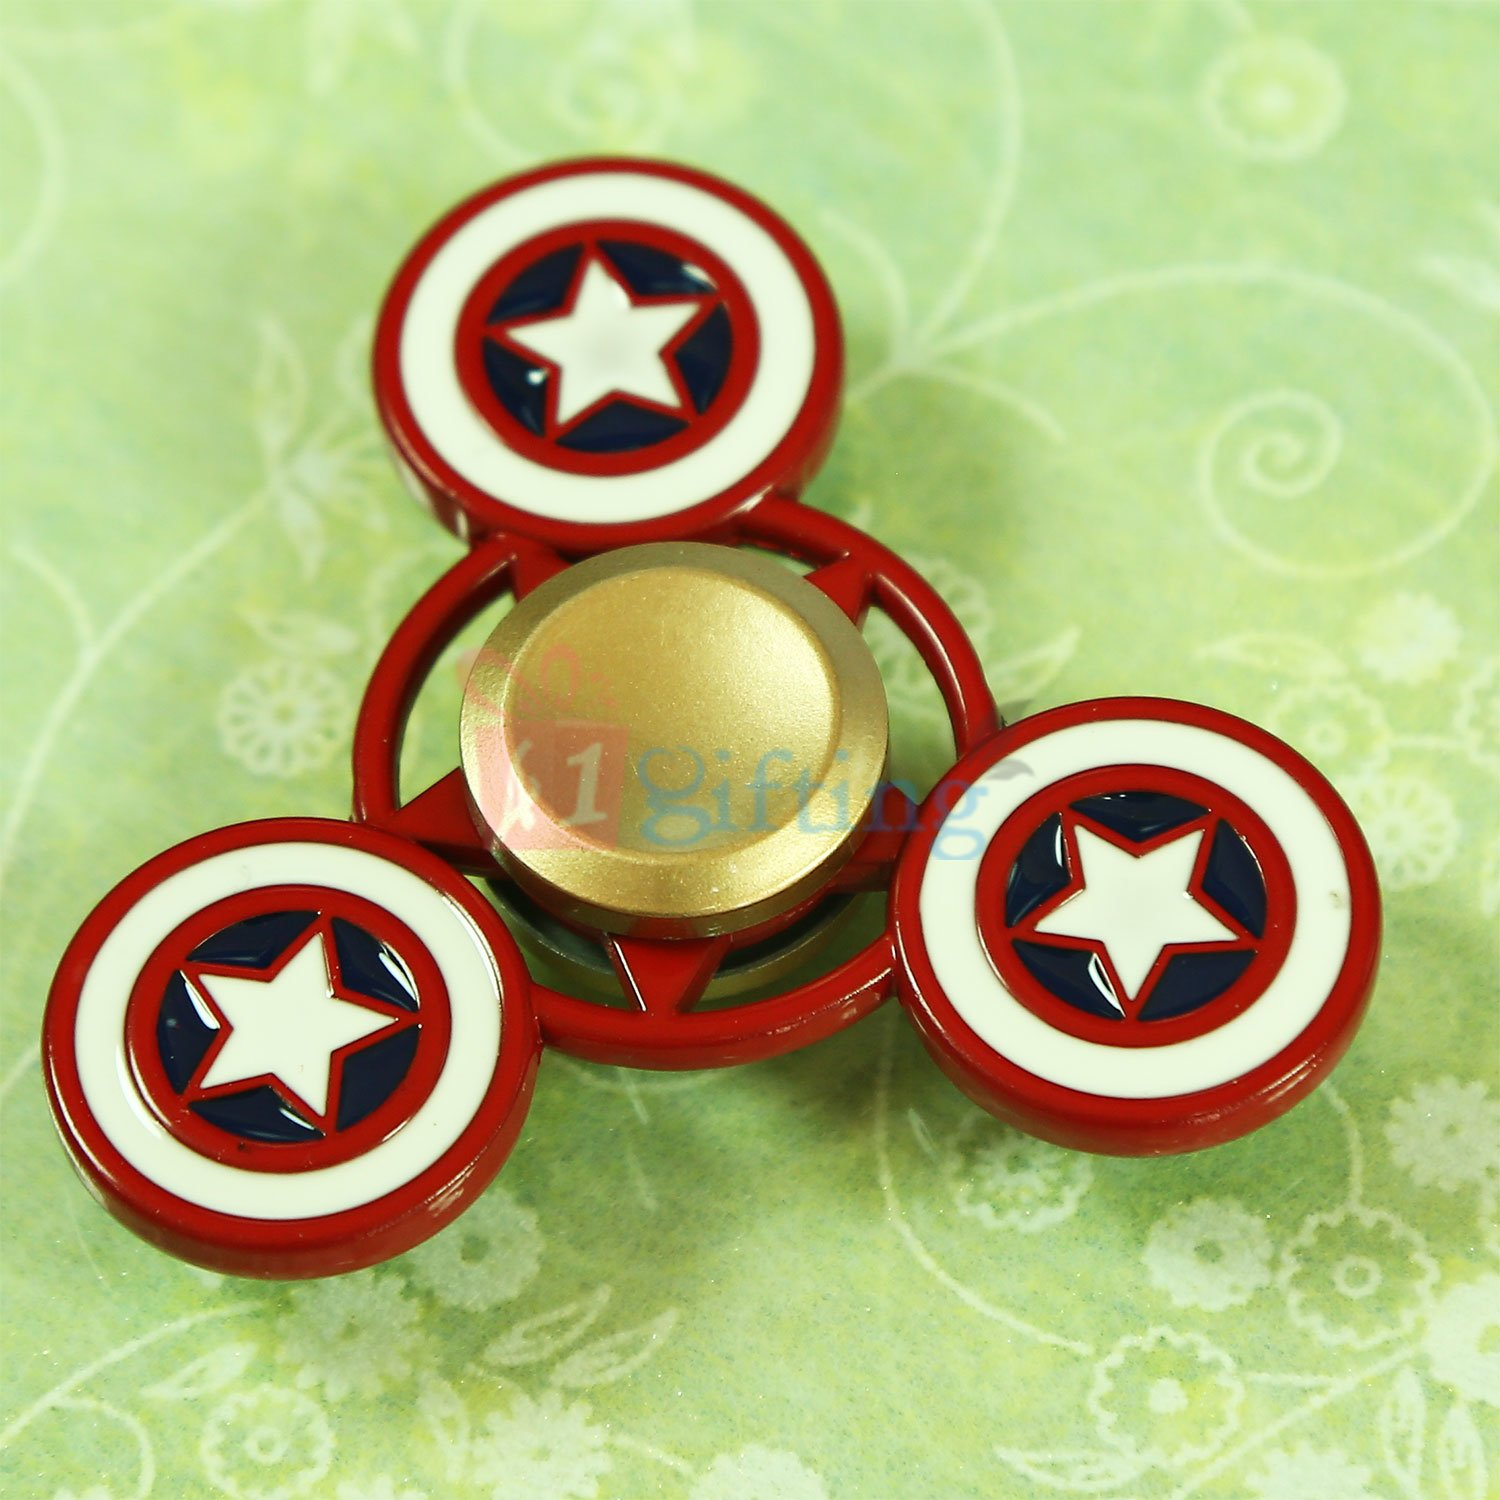 Pure Metalic Captain America Superb Quality Spinner